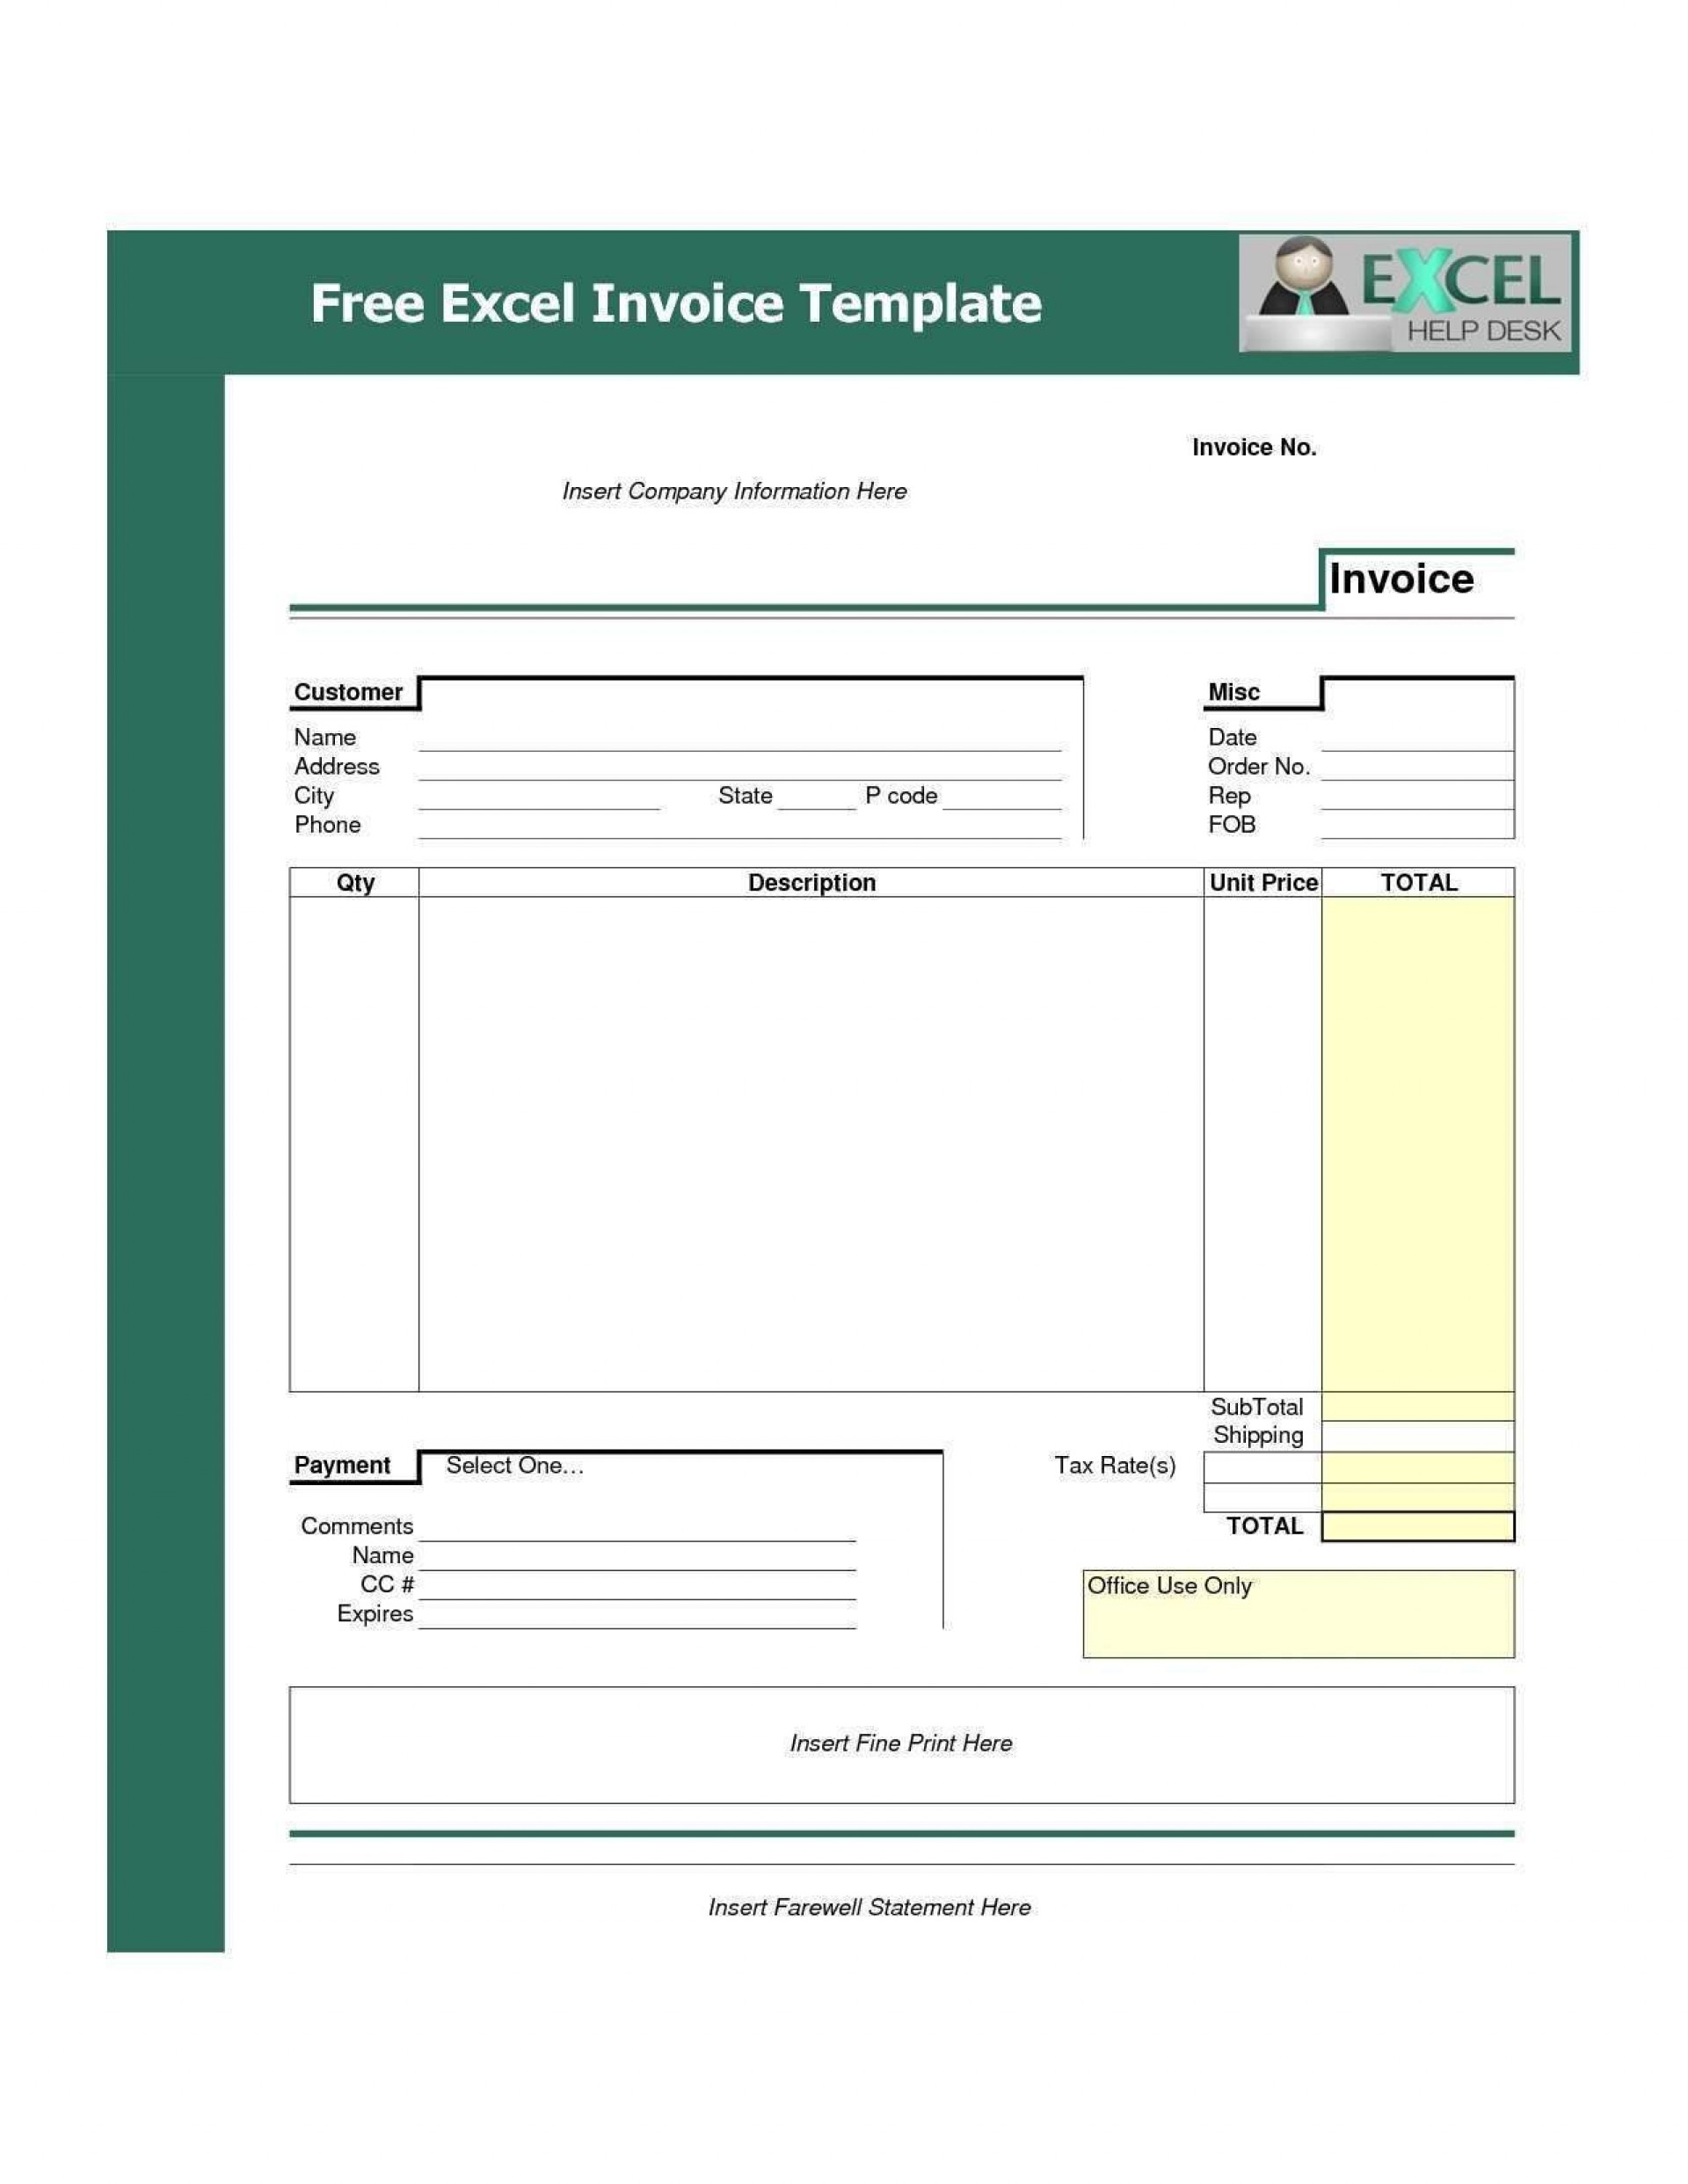 000 Phenomenal Free Tax Invoice Template Excel South Africa High Definition 1920